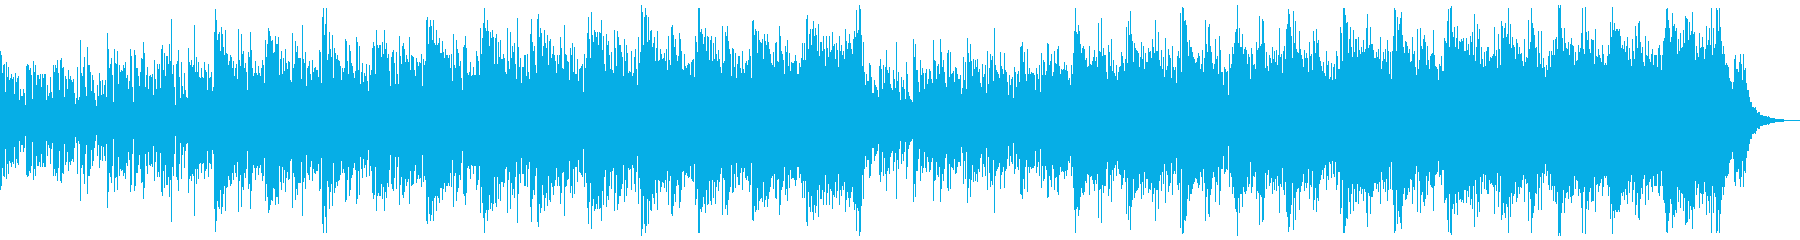 Cinematic Orchestra Strategy / Tension's reproduced waveform